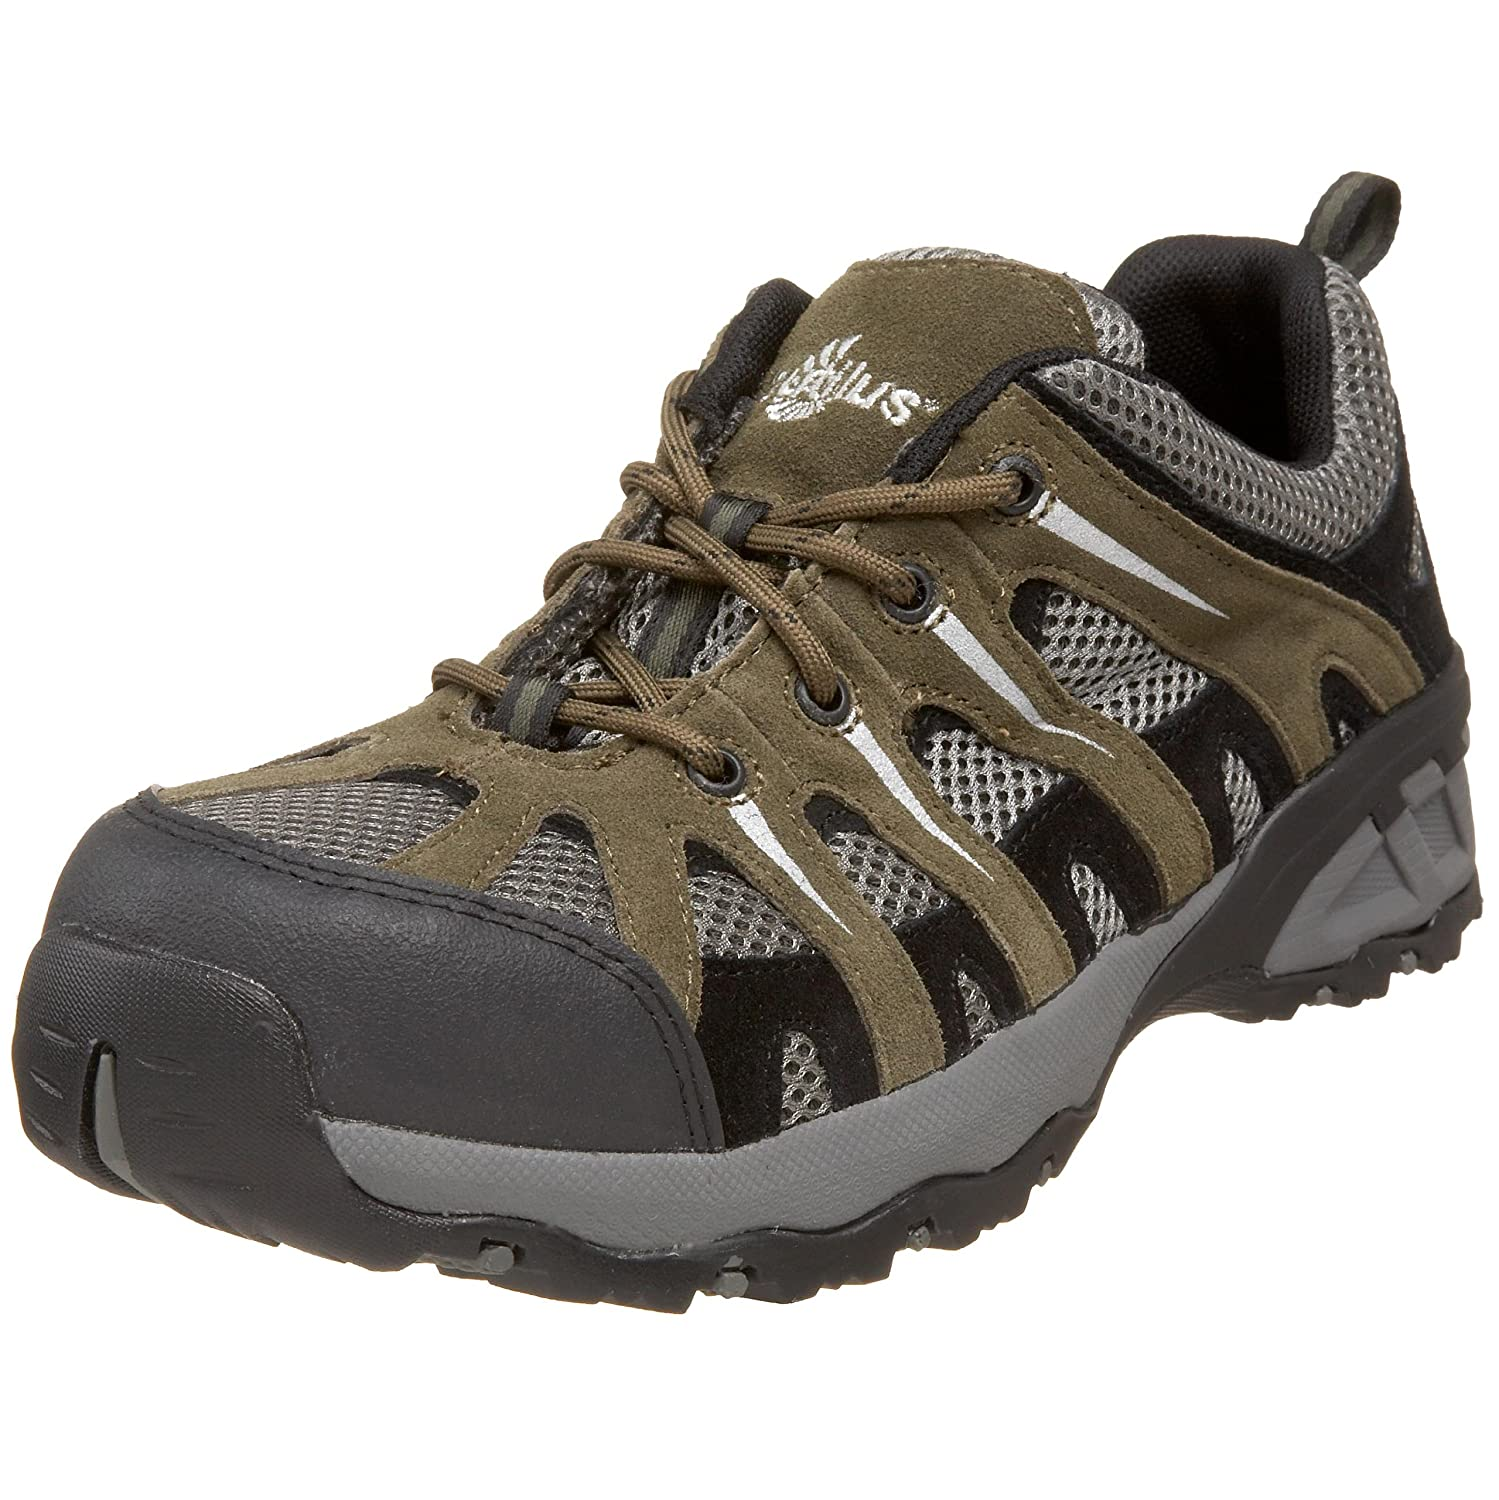 Nautilus Safety Footwear メンズ B002WC8K5Q 14 2E US|Khaki/Grey Khaki/Grey 14 2E US